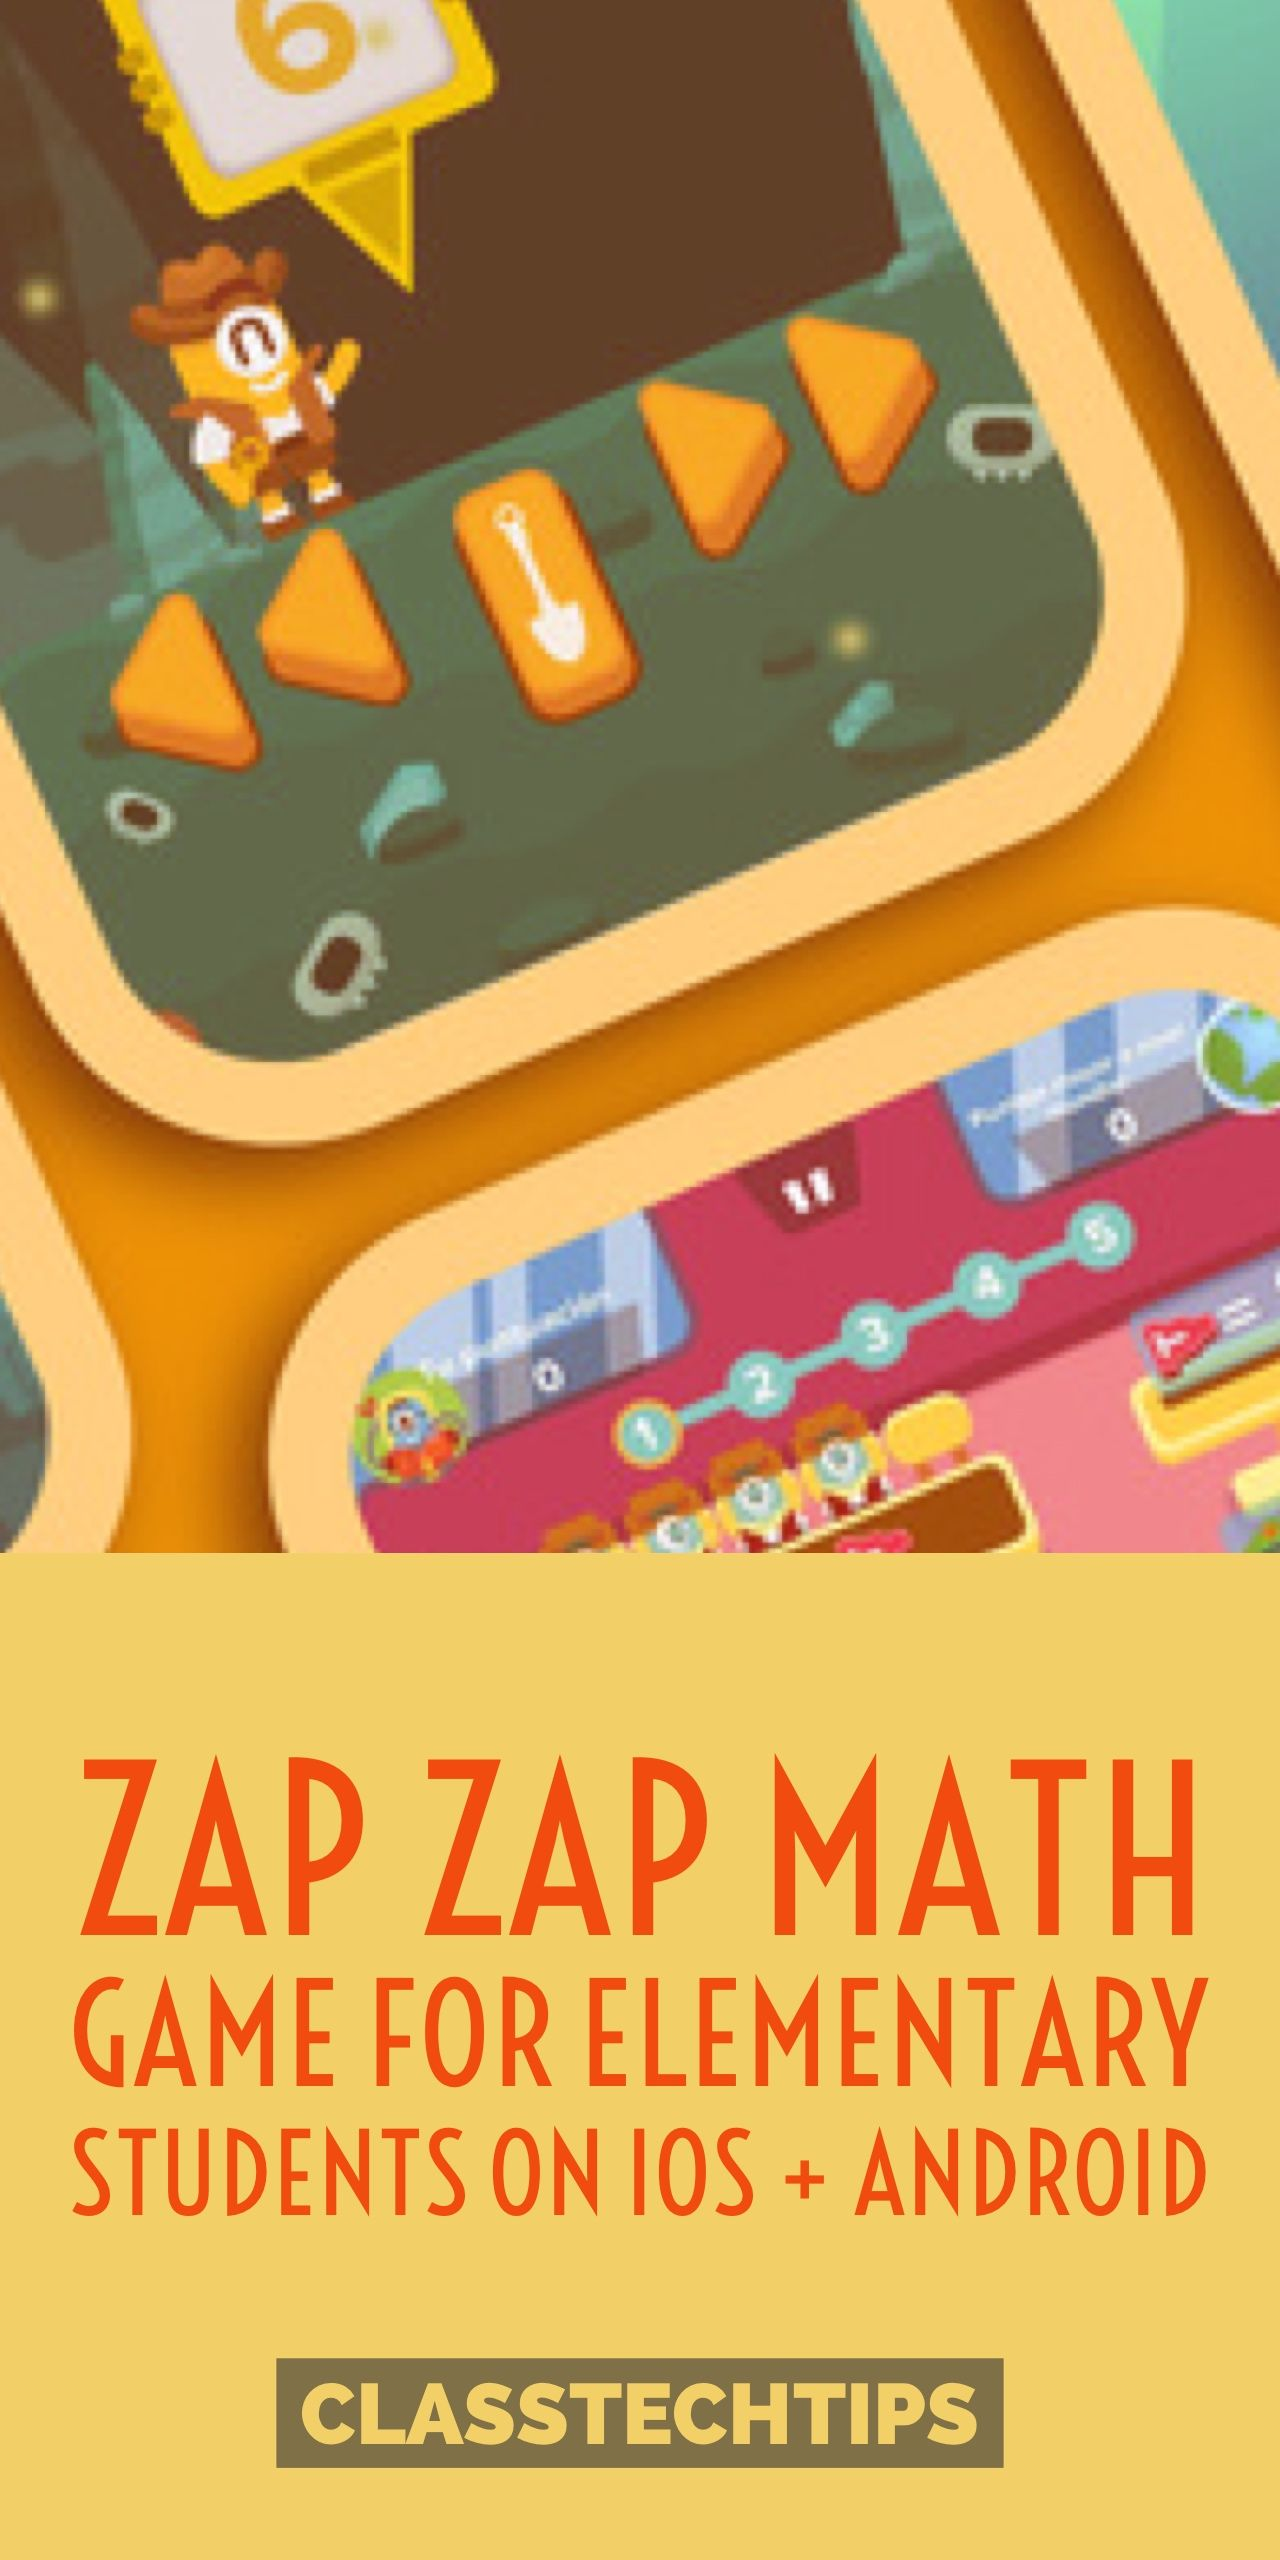 Zap Zap Math Game for Elementary Students on iOS + Android